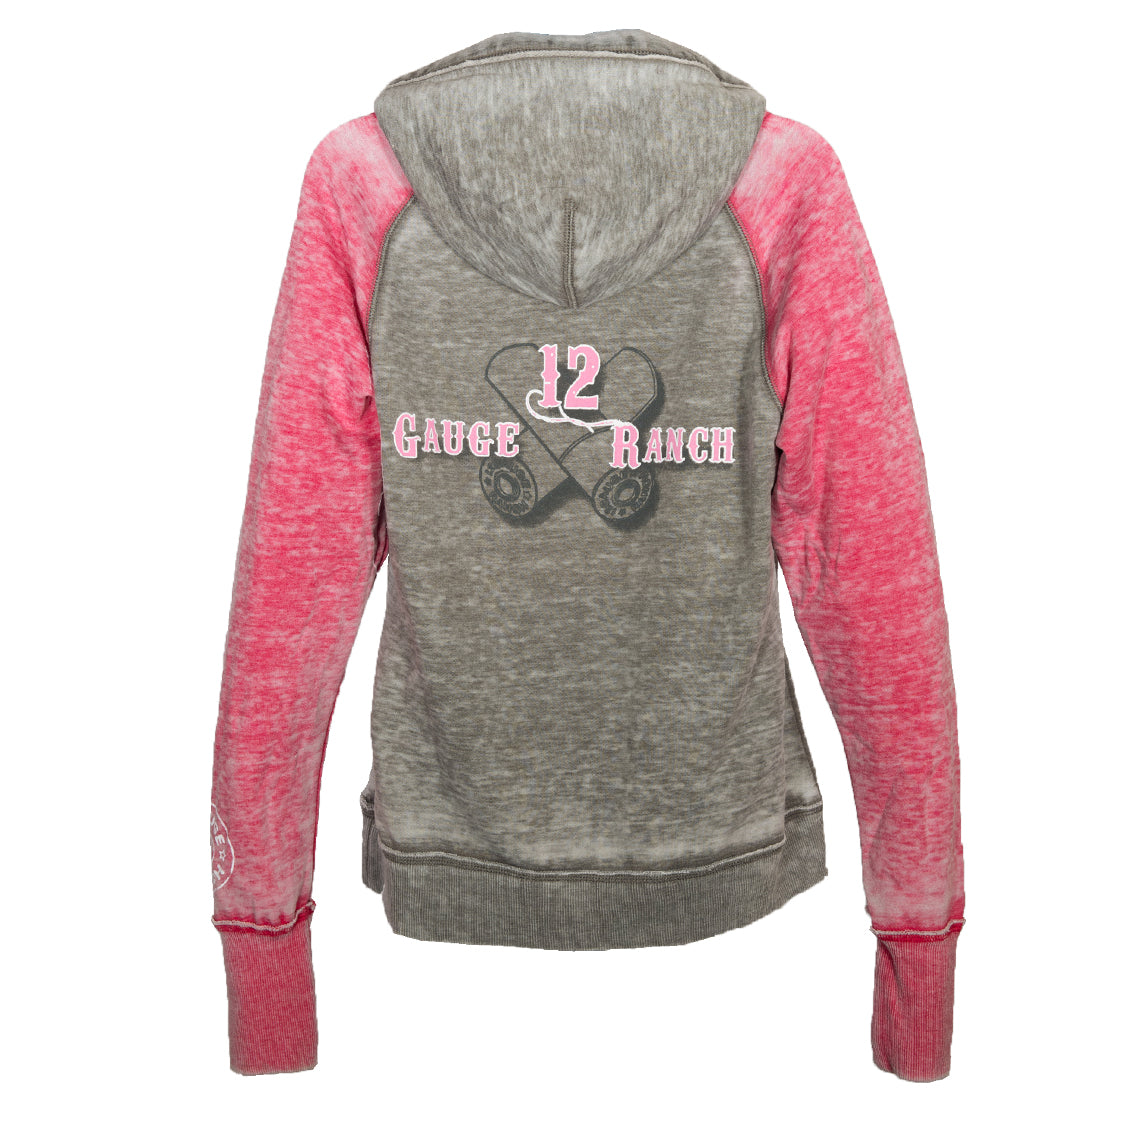 12 Gauge Ranch Pink & Grey Hoodie, Apparel, 12 Gauge Ranch, 12 Gauge Ranch Ranch  12 Gauge Ranch